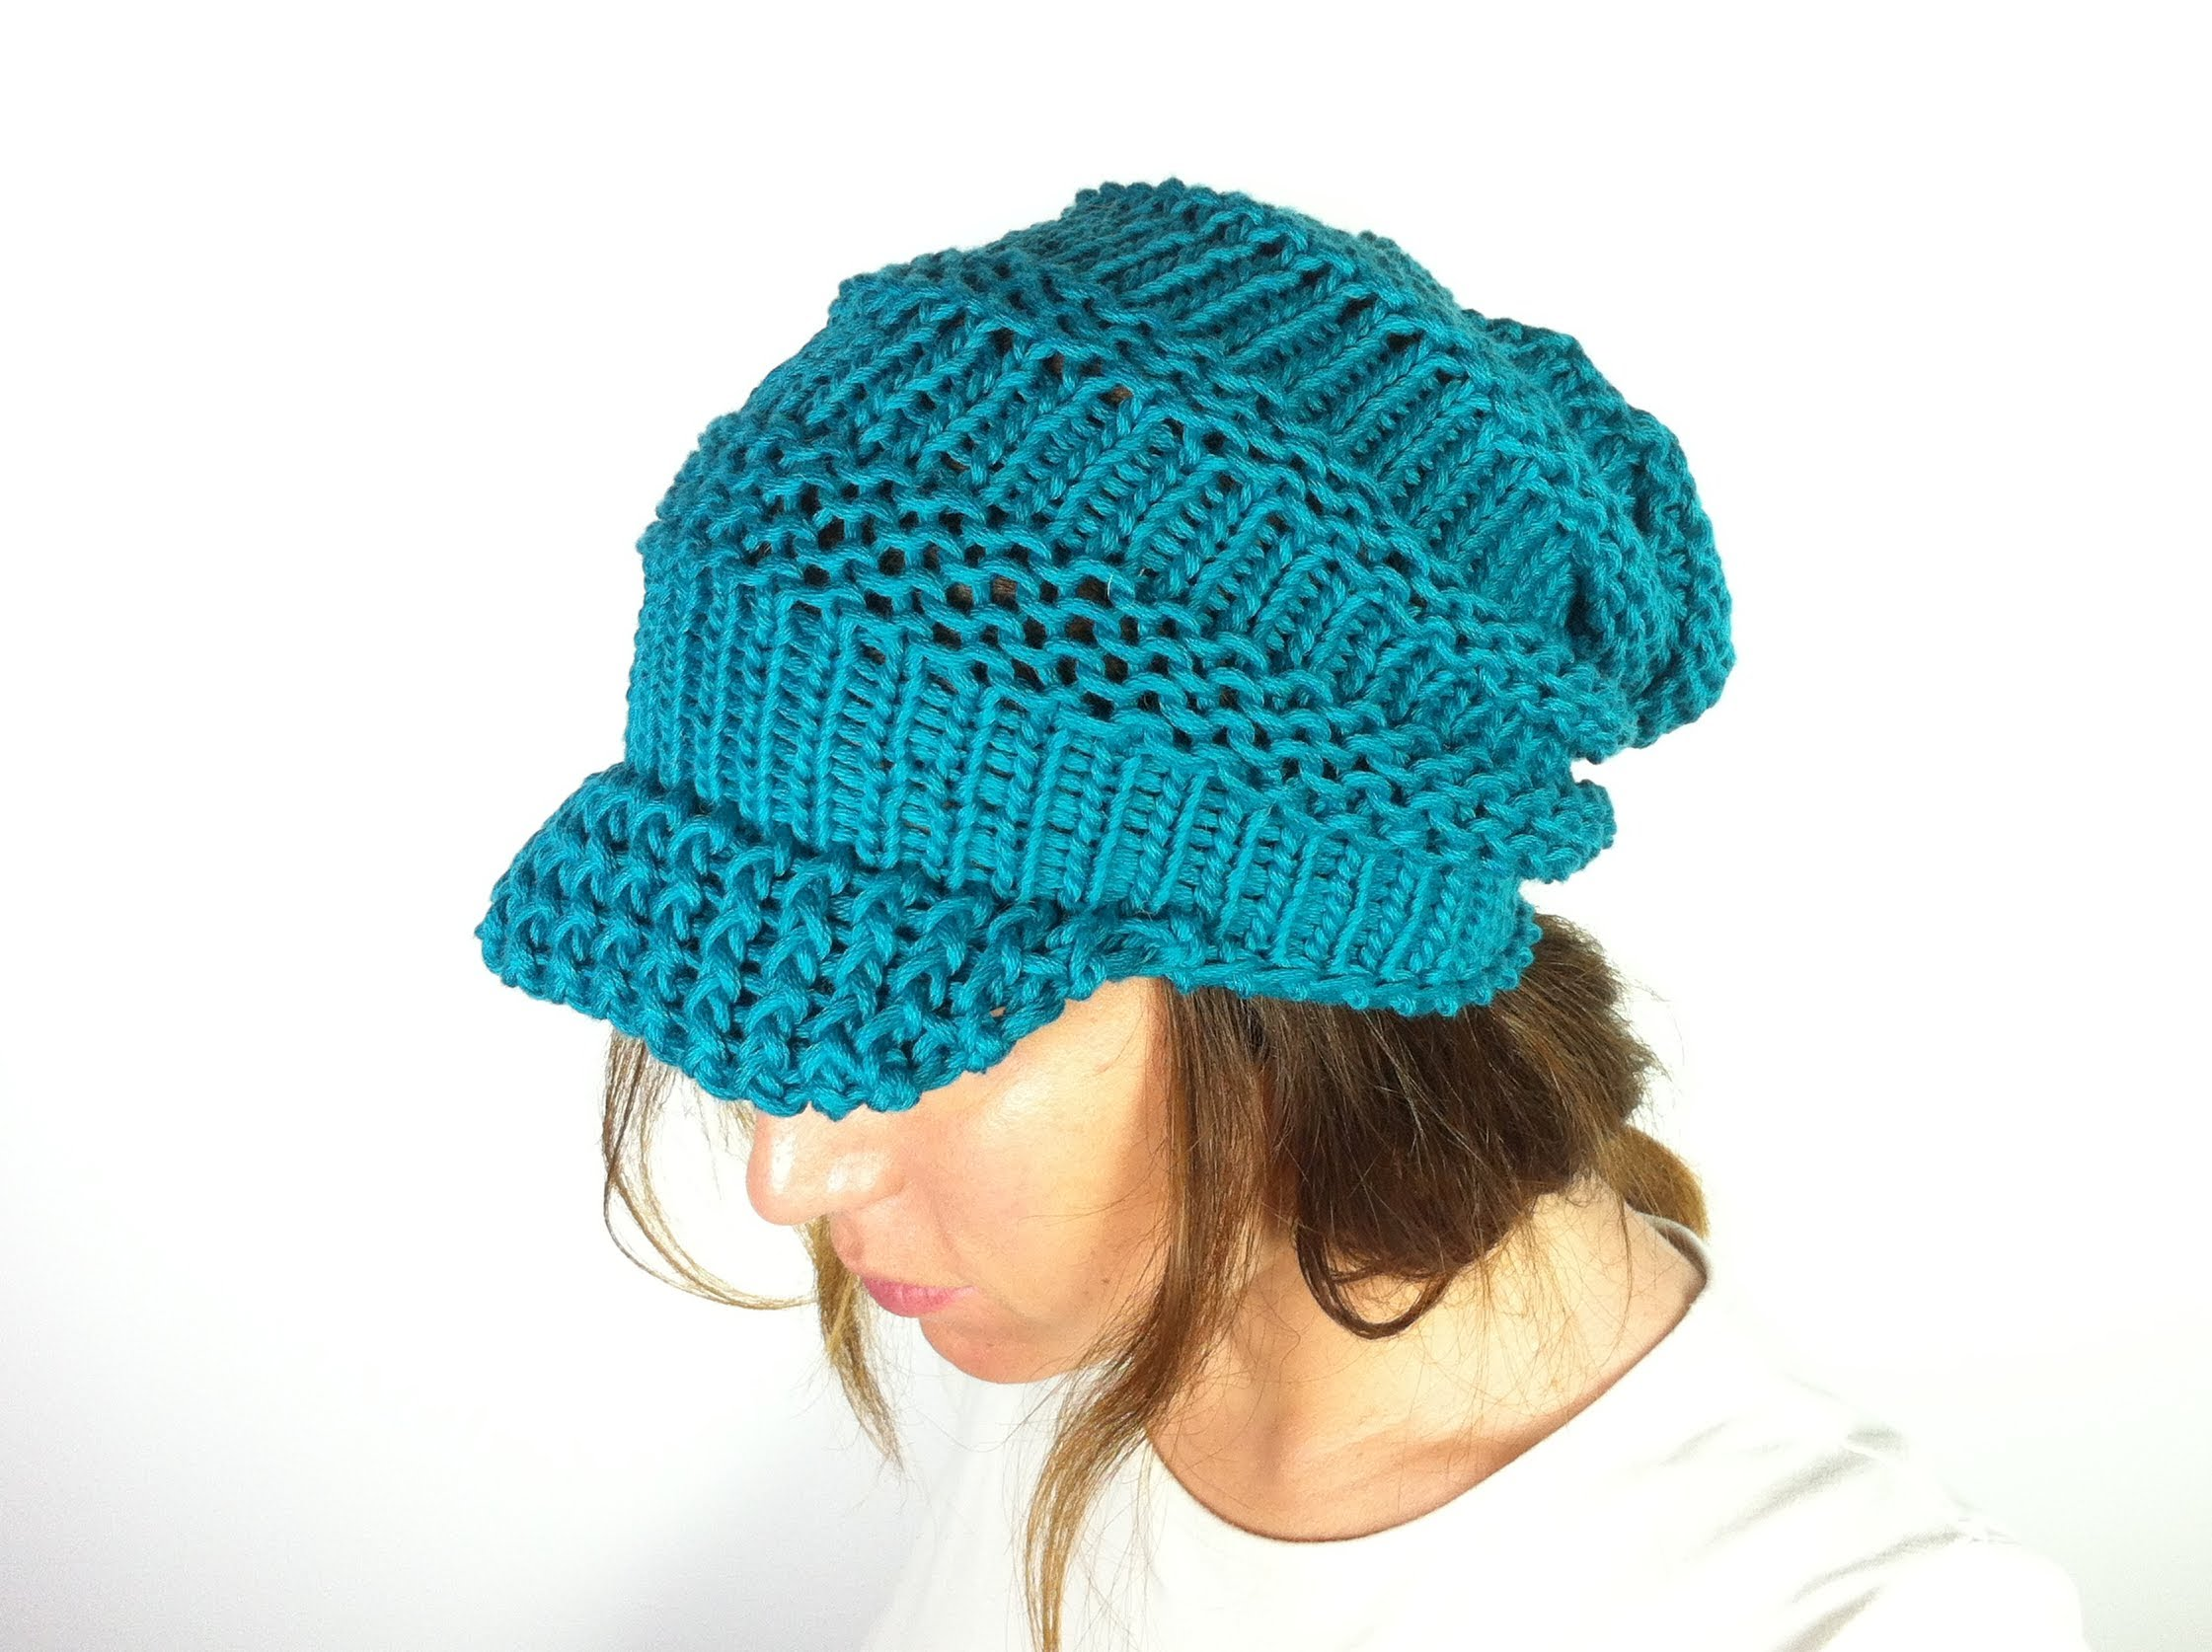 Knitting Loom Hat : Loom knit slouchy hat patterns a knitting